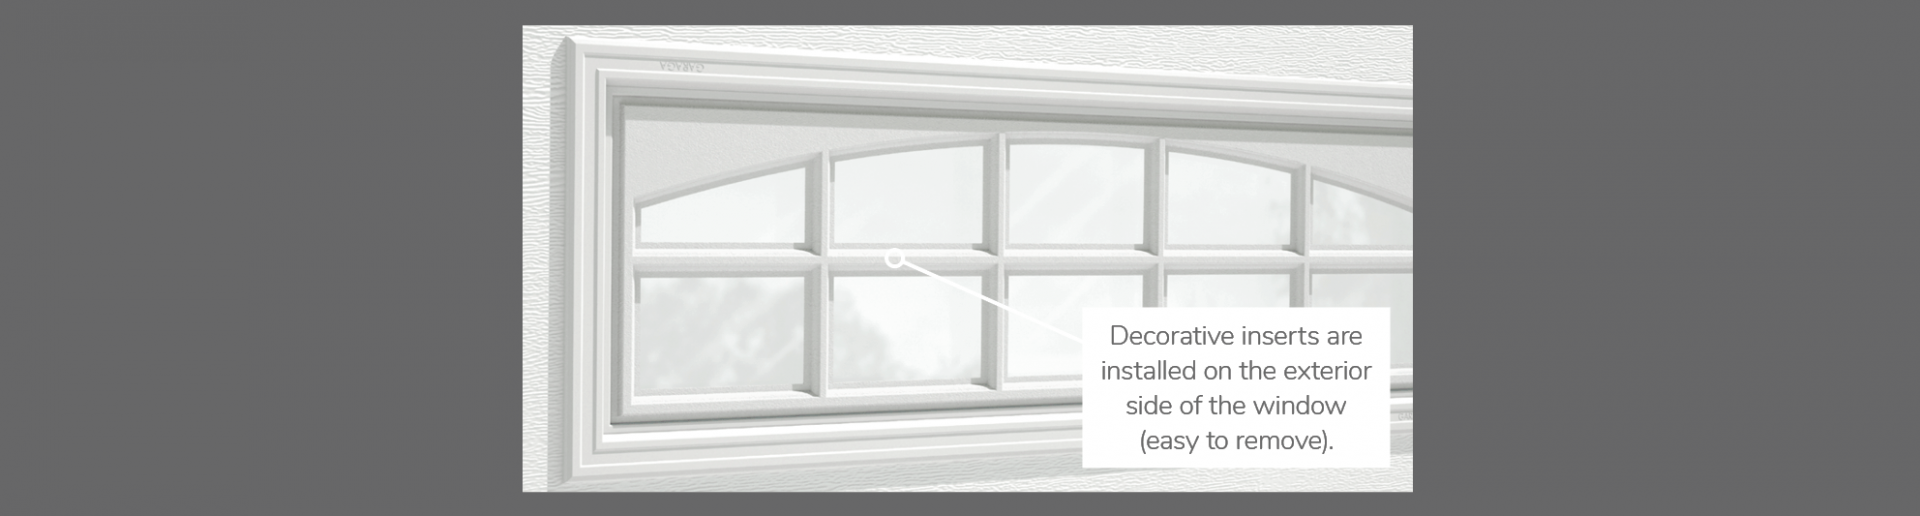 "Cascade Decorative Insert, 40"" x 13"", available for door R-16"